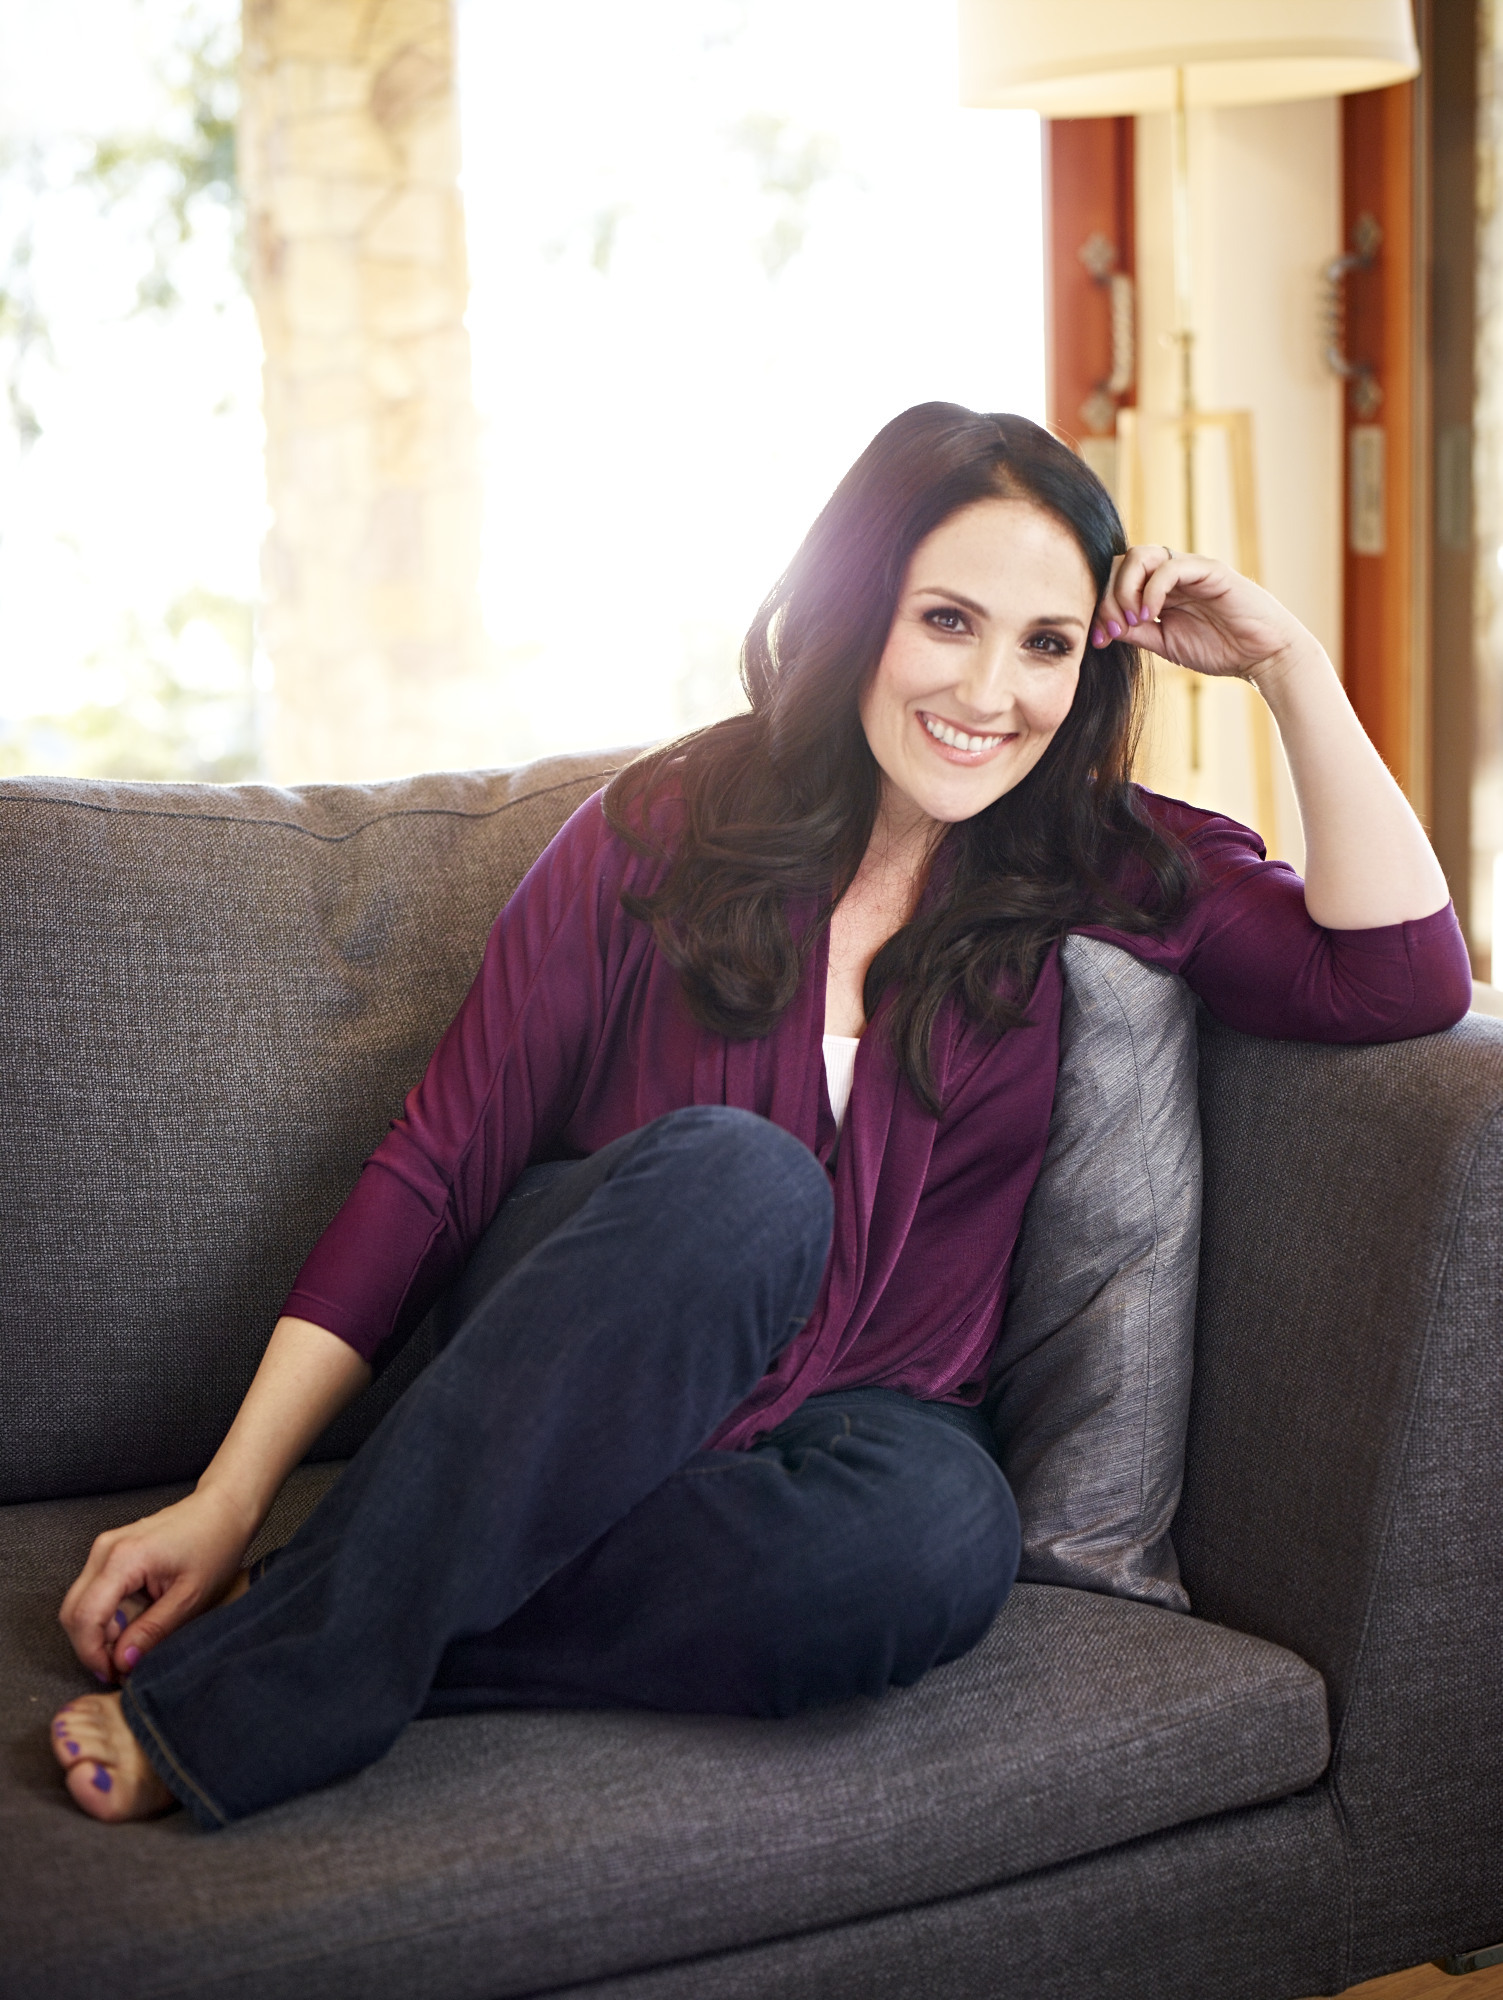 Ricki Lake on Photoshoot